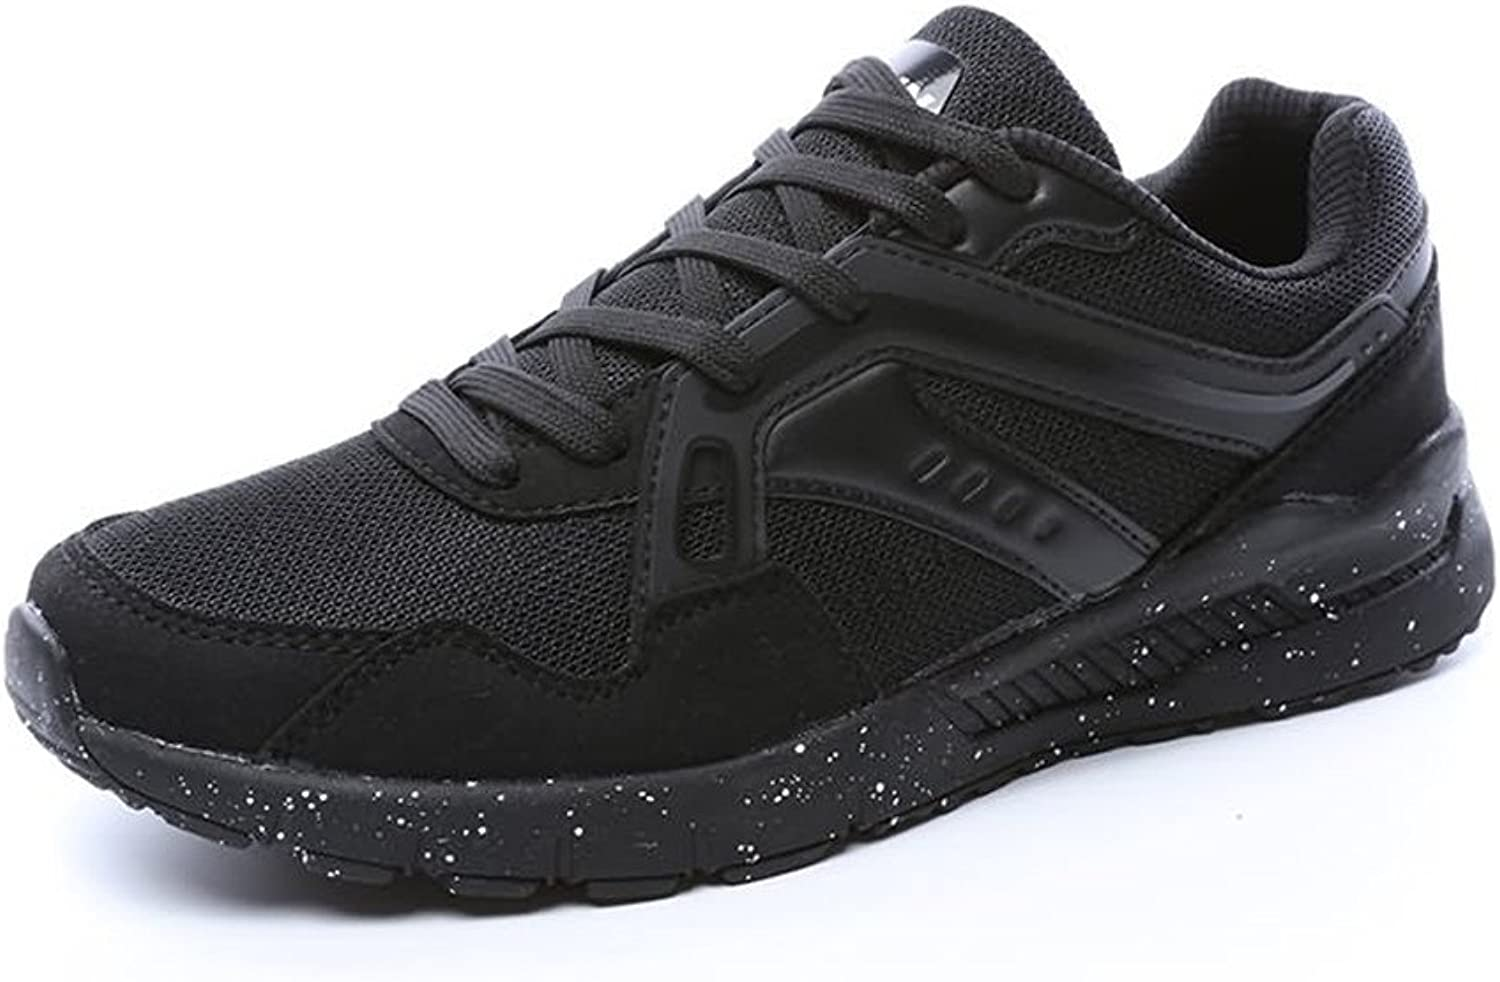 Z.L.F Women and Men's Running shoes Flat Heel Lace Up Leisure Athletic Outdoor Sport shoes